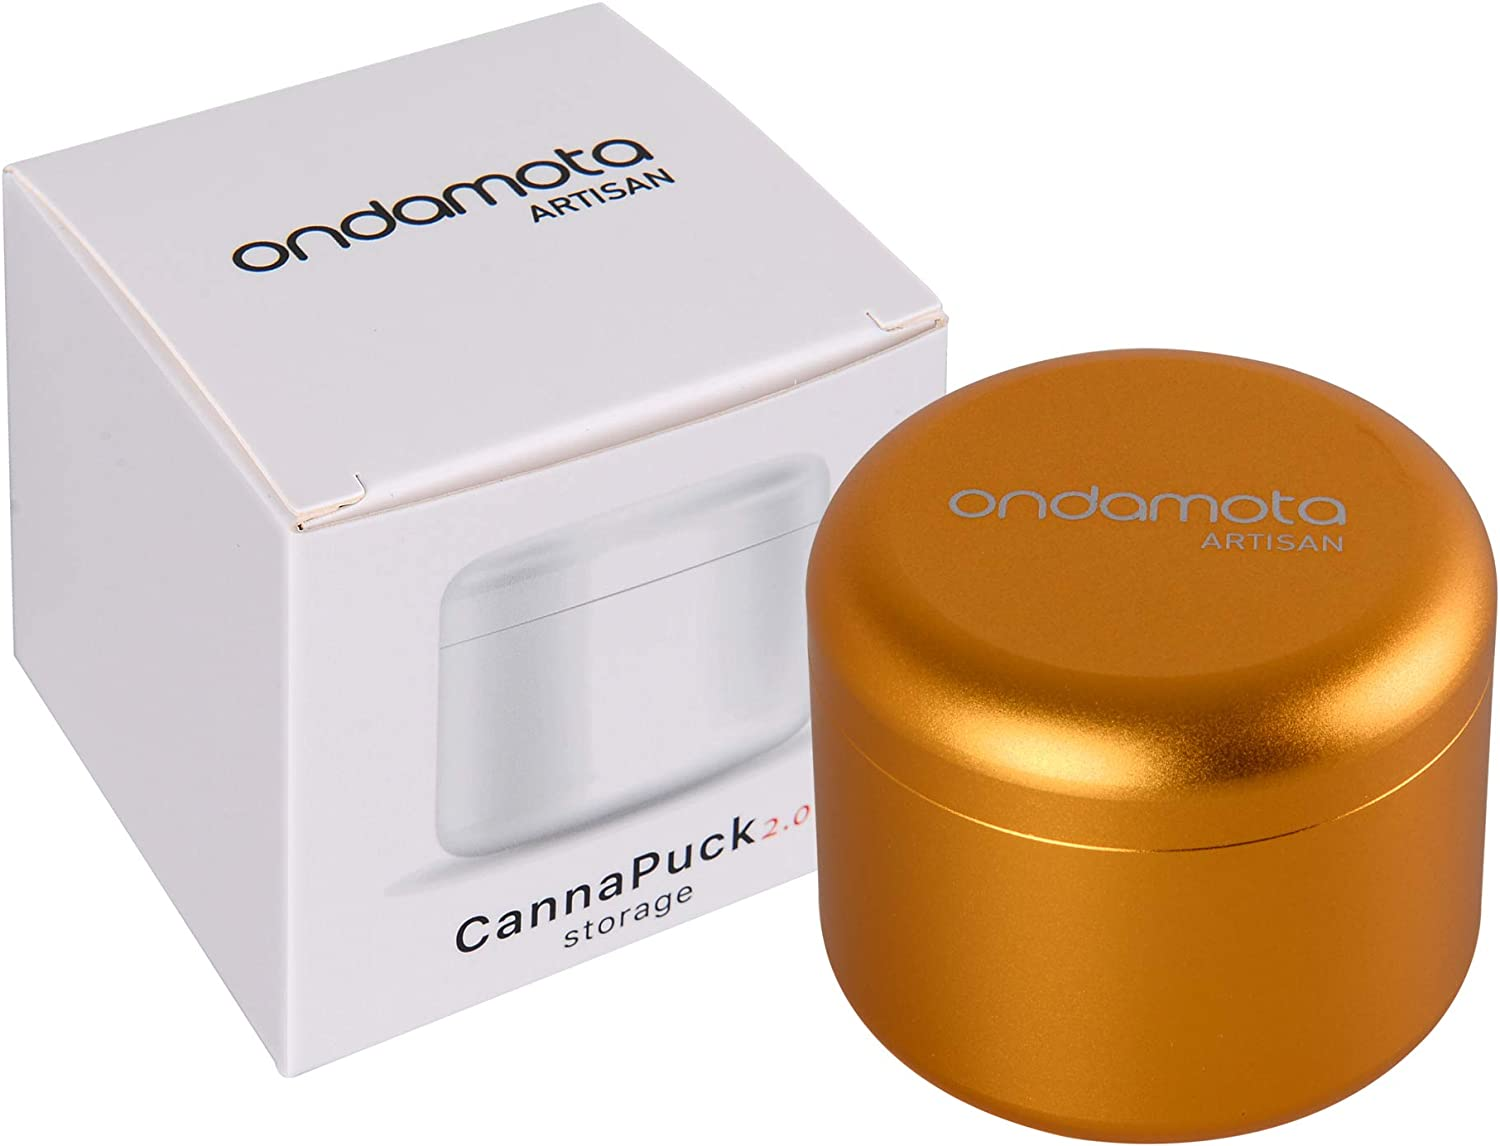 """Stash Jar Herb Storage Container in Sturdy, Air Tight Aluminum from ONDAMOTA. 2.1"""" Wide, 1.8"""" High Holds 12g Keeps Fresh, Locks in Aroma. Conveniently (Acapulco Gold)"""